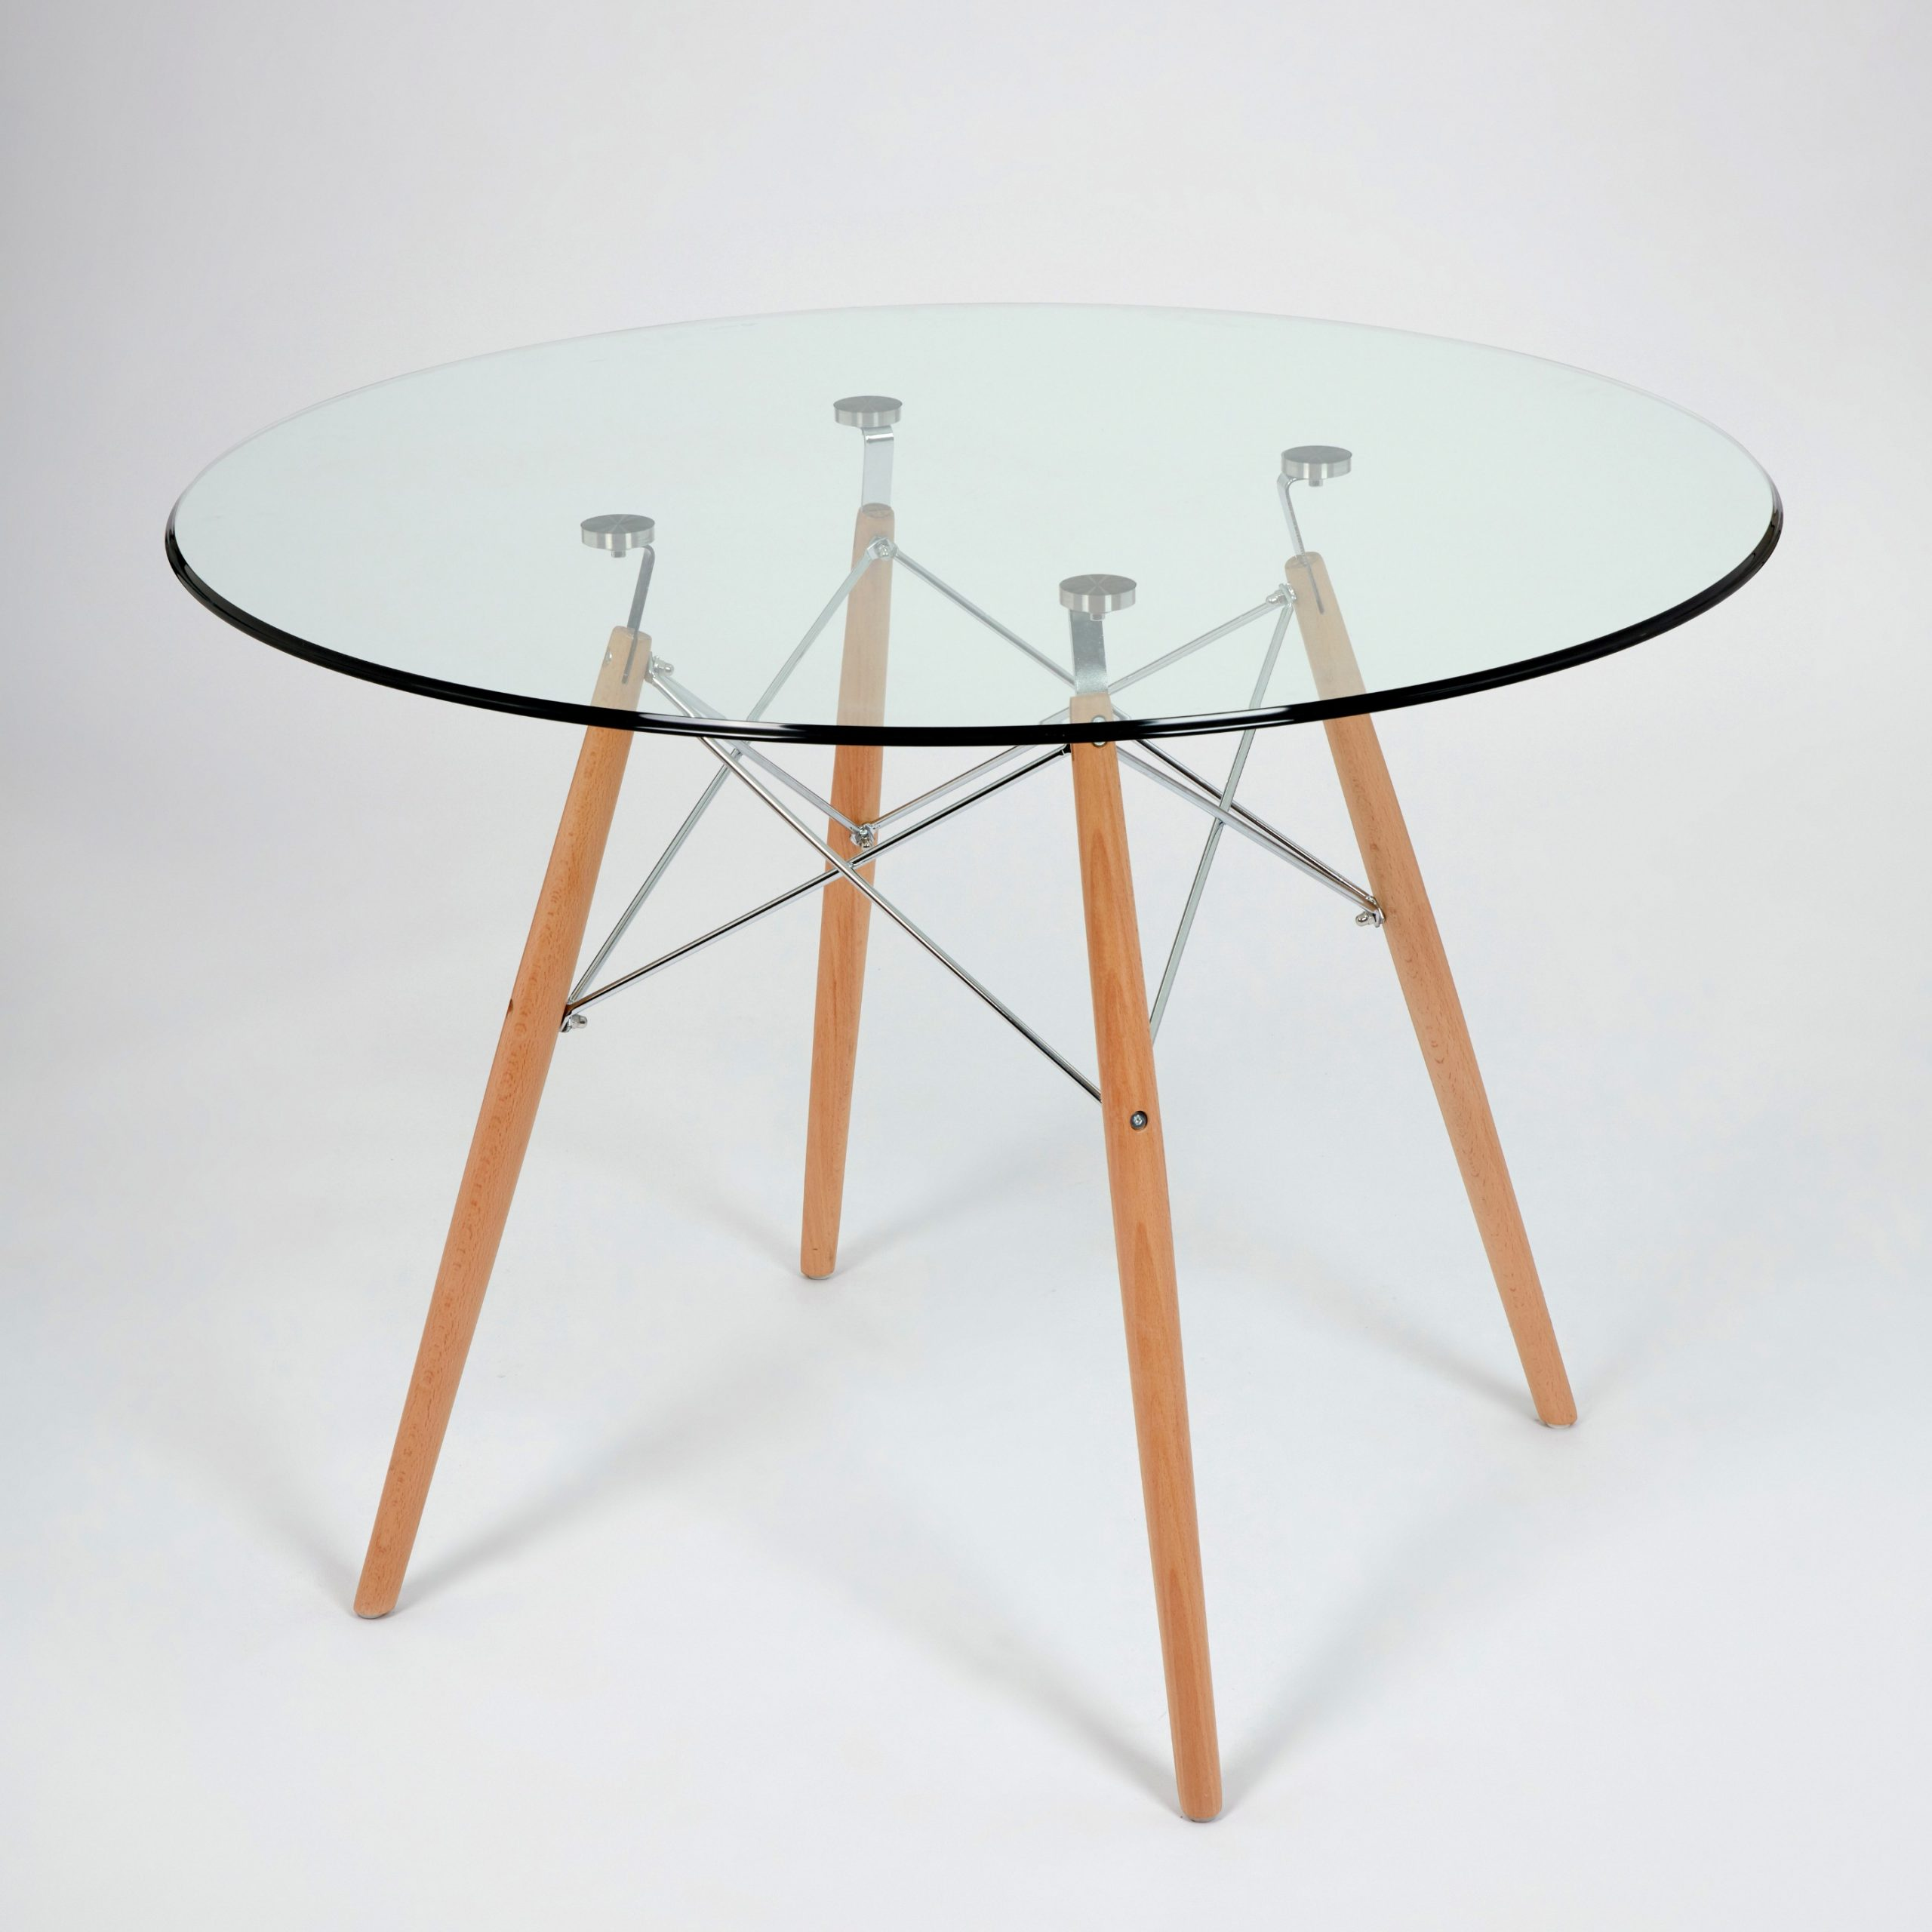 Dining Glass Table With Beechwood Legs (Size: 100Cm Throughout Well Known Eames Style Dining Tables With Chromed Leg And Tempered Glass Top (View 4 of 30)